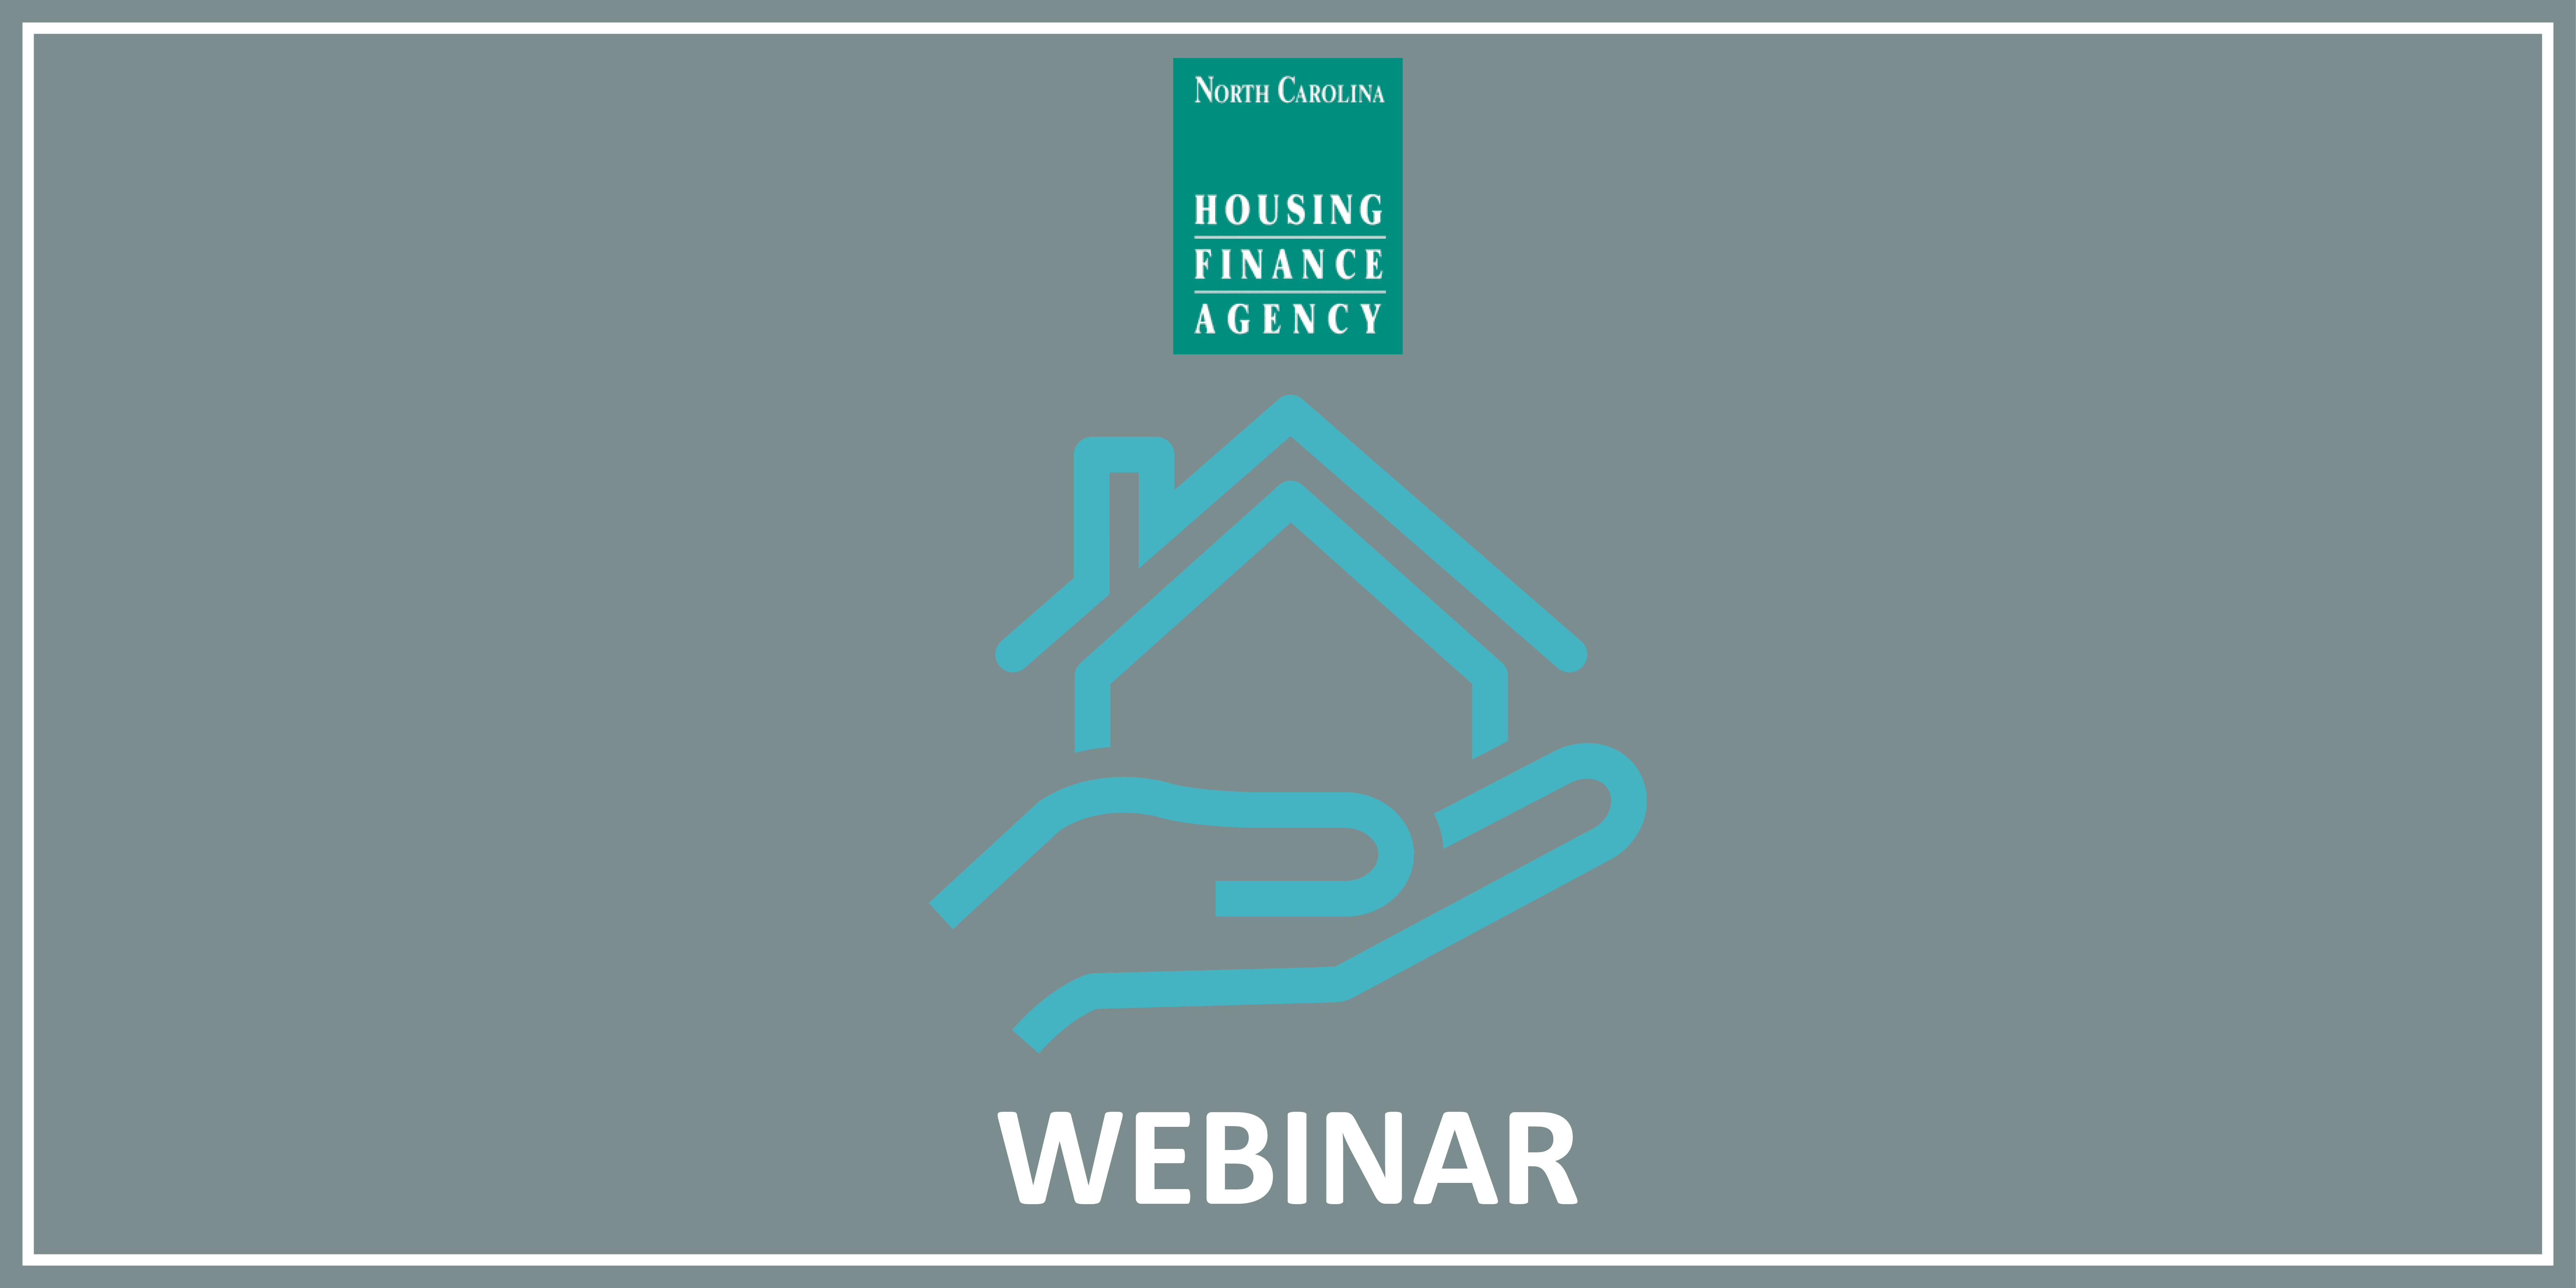 Blue outline of house in hand with WEBINAR written below